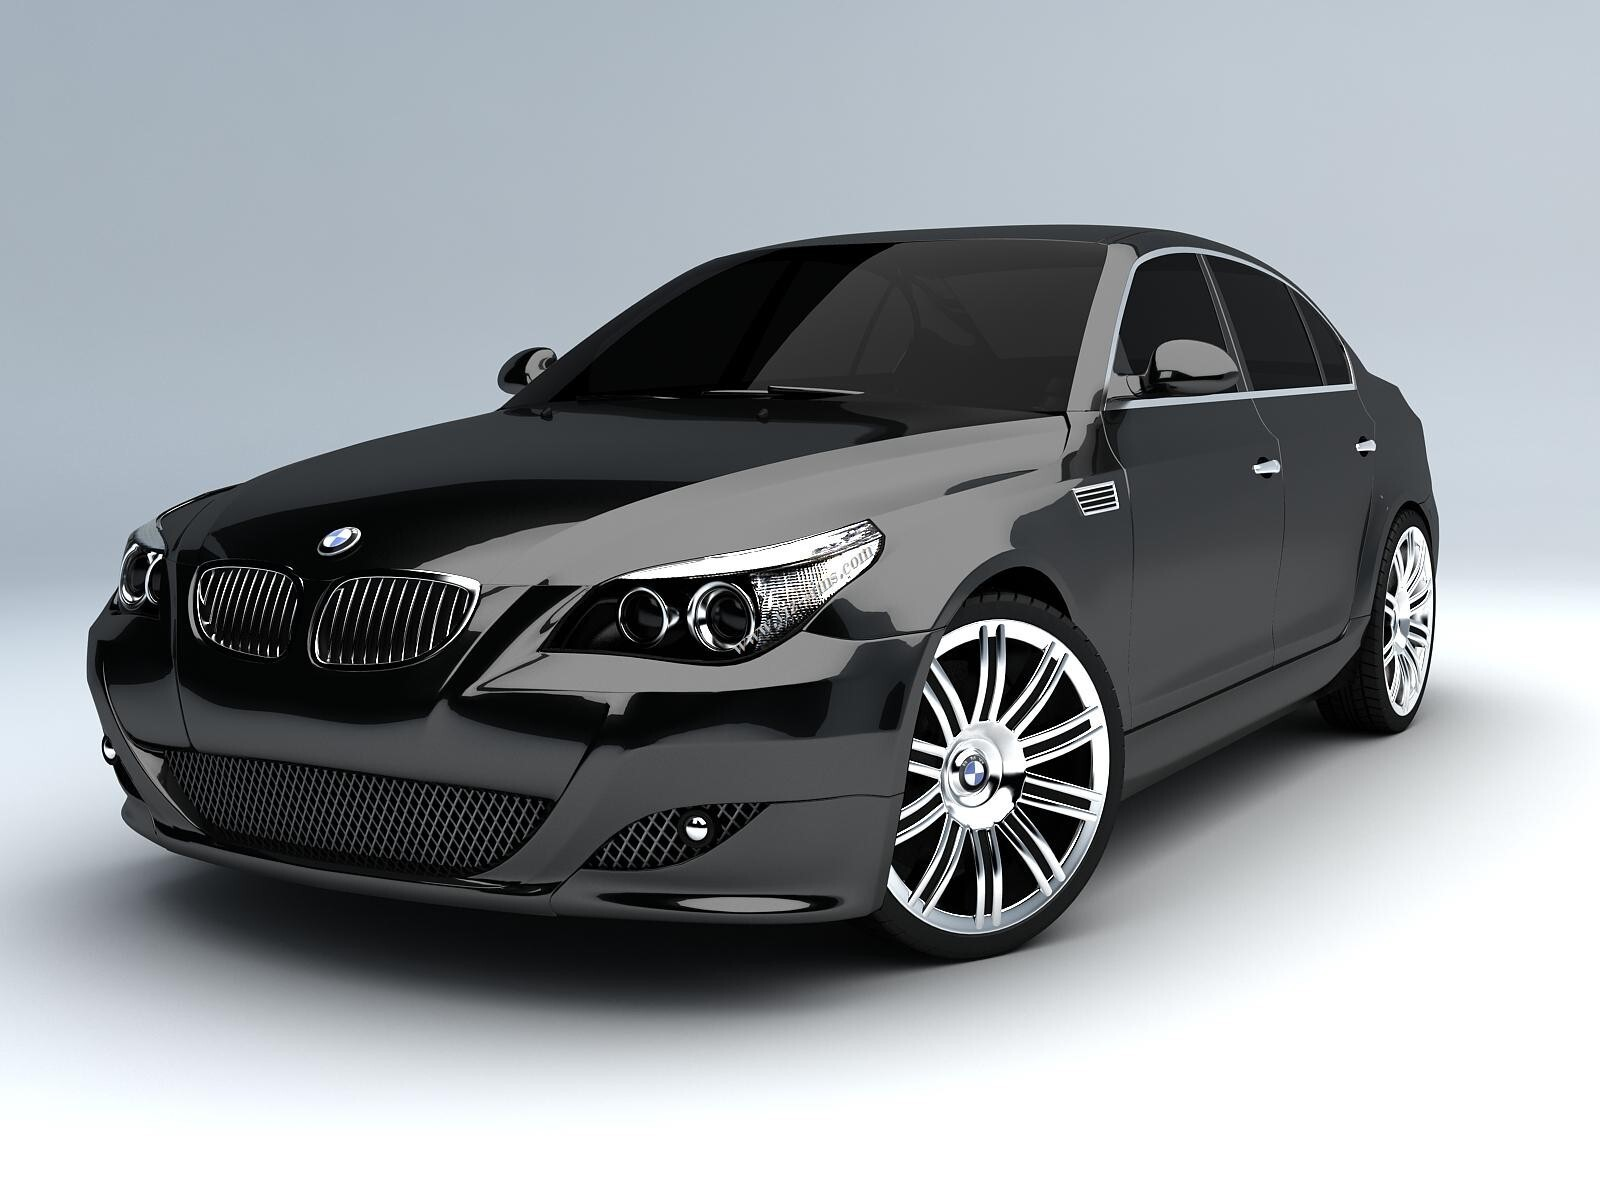 Black Bmw 7 Series Cars Wallpapers Hd Wallpapers